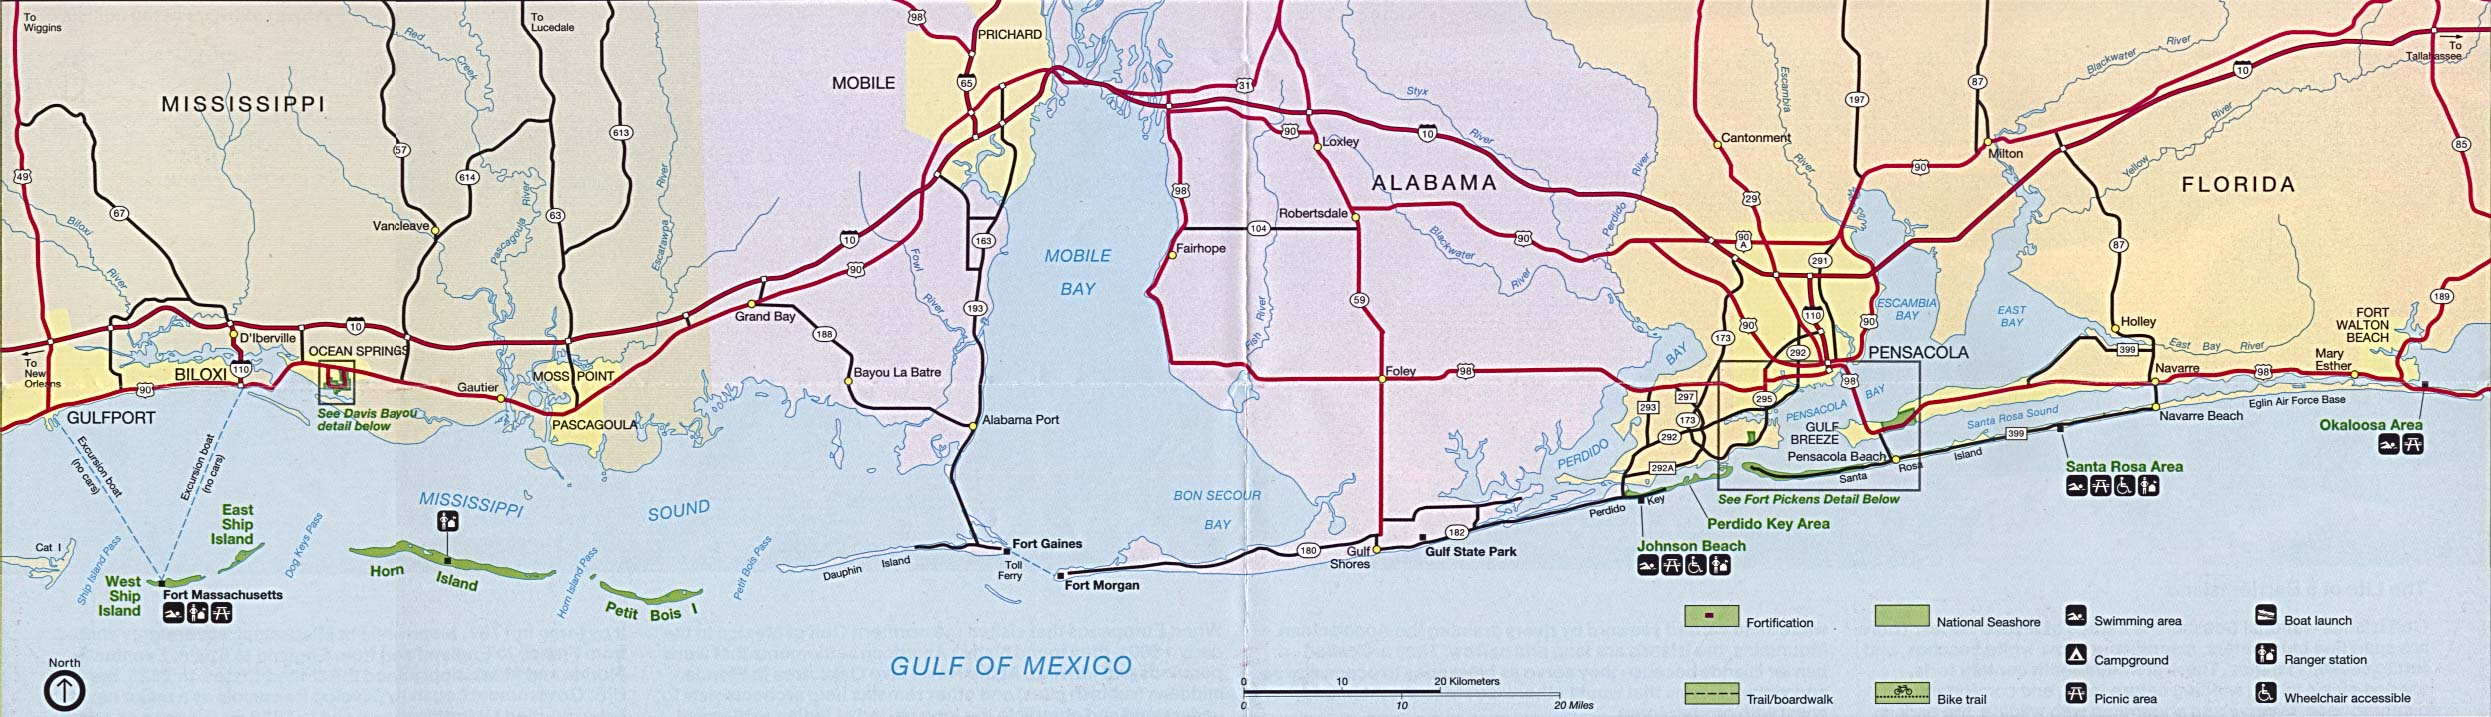 Detailed Map Of Florida Gulf Coast And Travel Information | Download - Florida Gulf Coastline Map